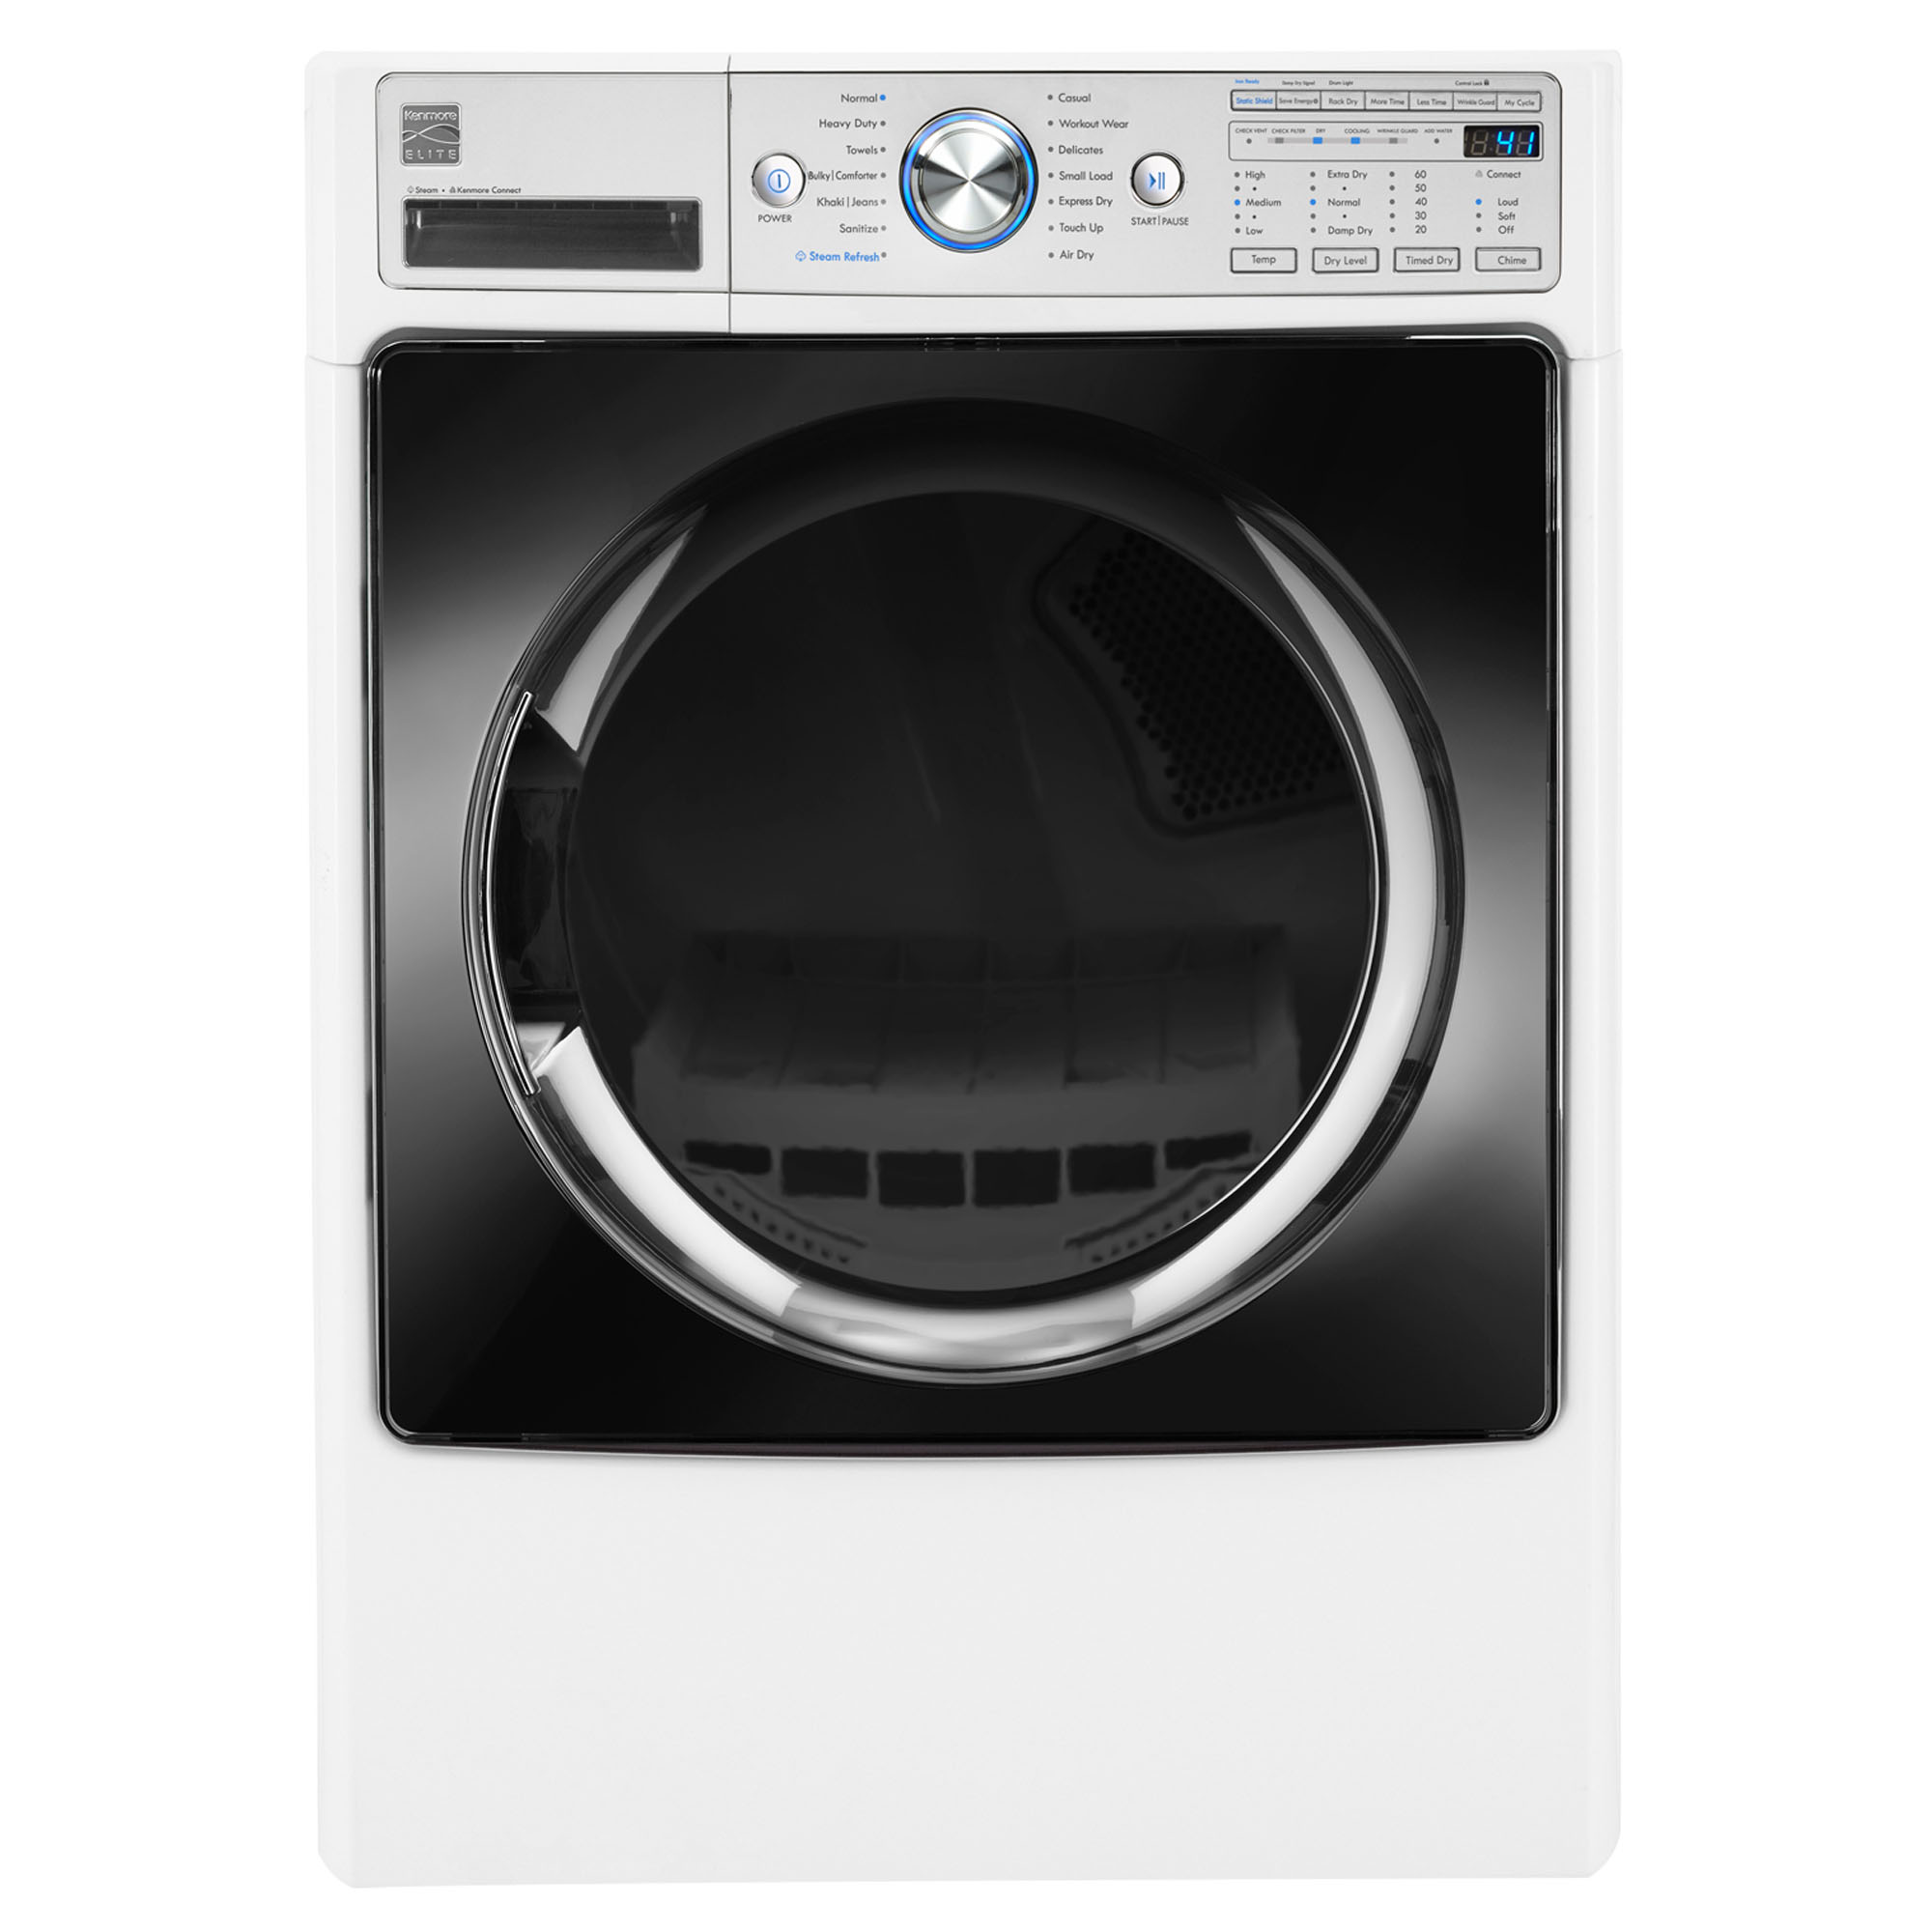 Kenmore Elite 81582 7.4 cu. ft. Electric Dryer w/ Steam